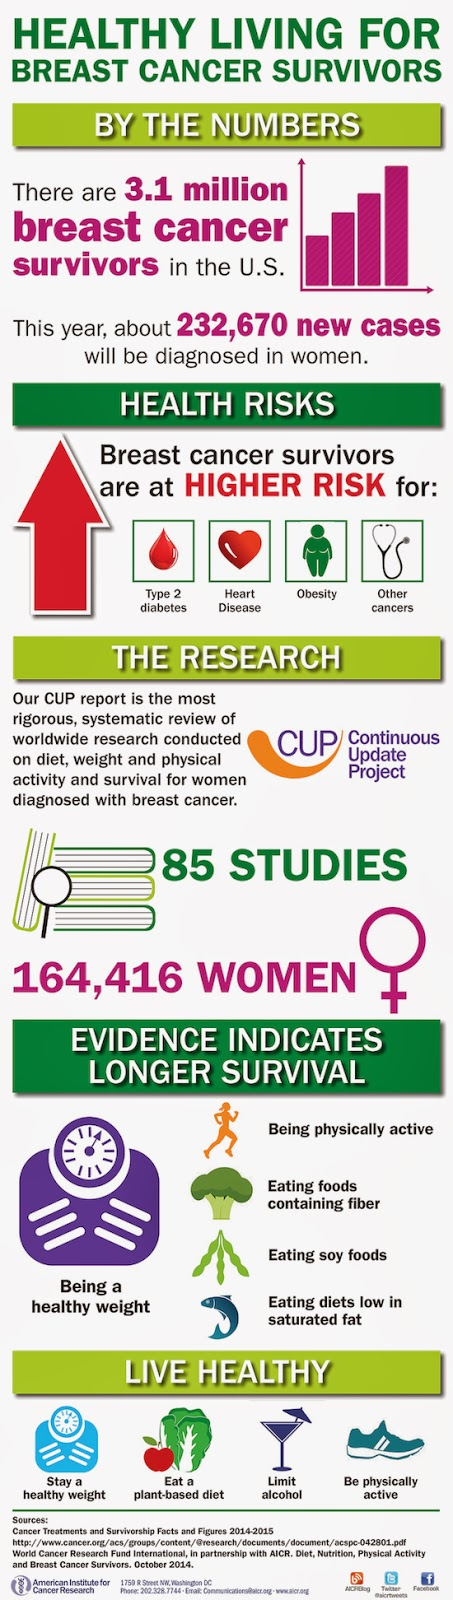 Infographic: Breast cancer survivorship